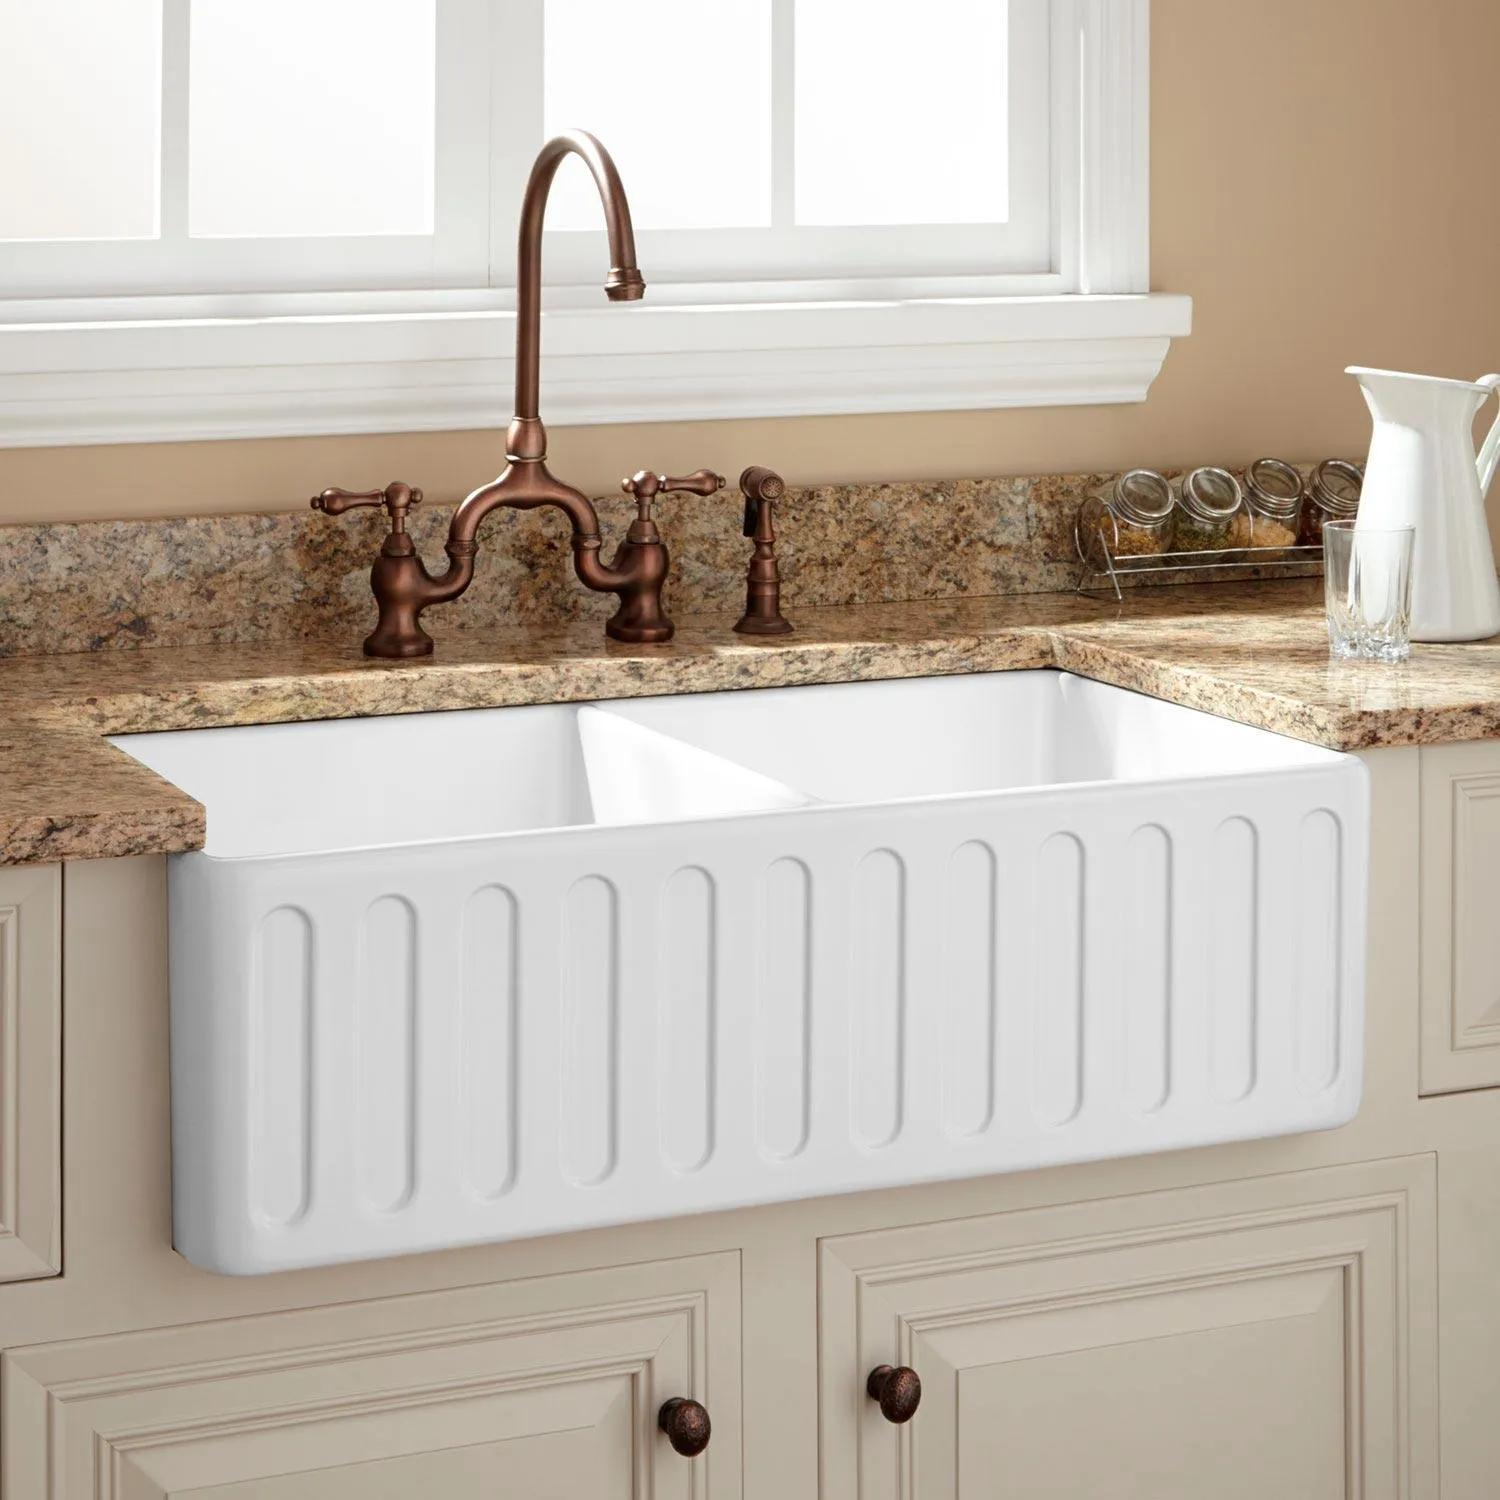 33 Northing Double Bowl Fireclay Farmhouse Sink White Kitchen